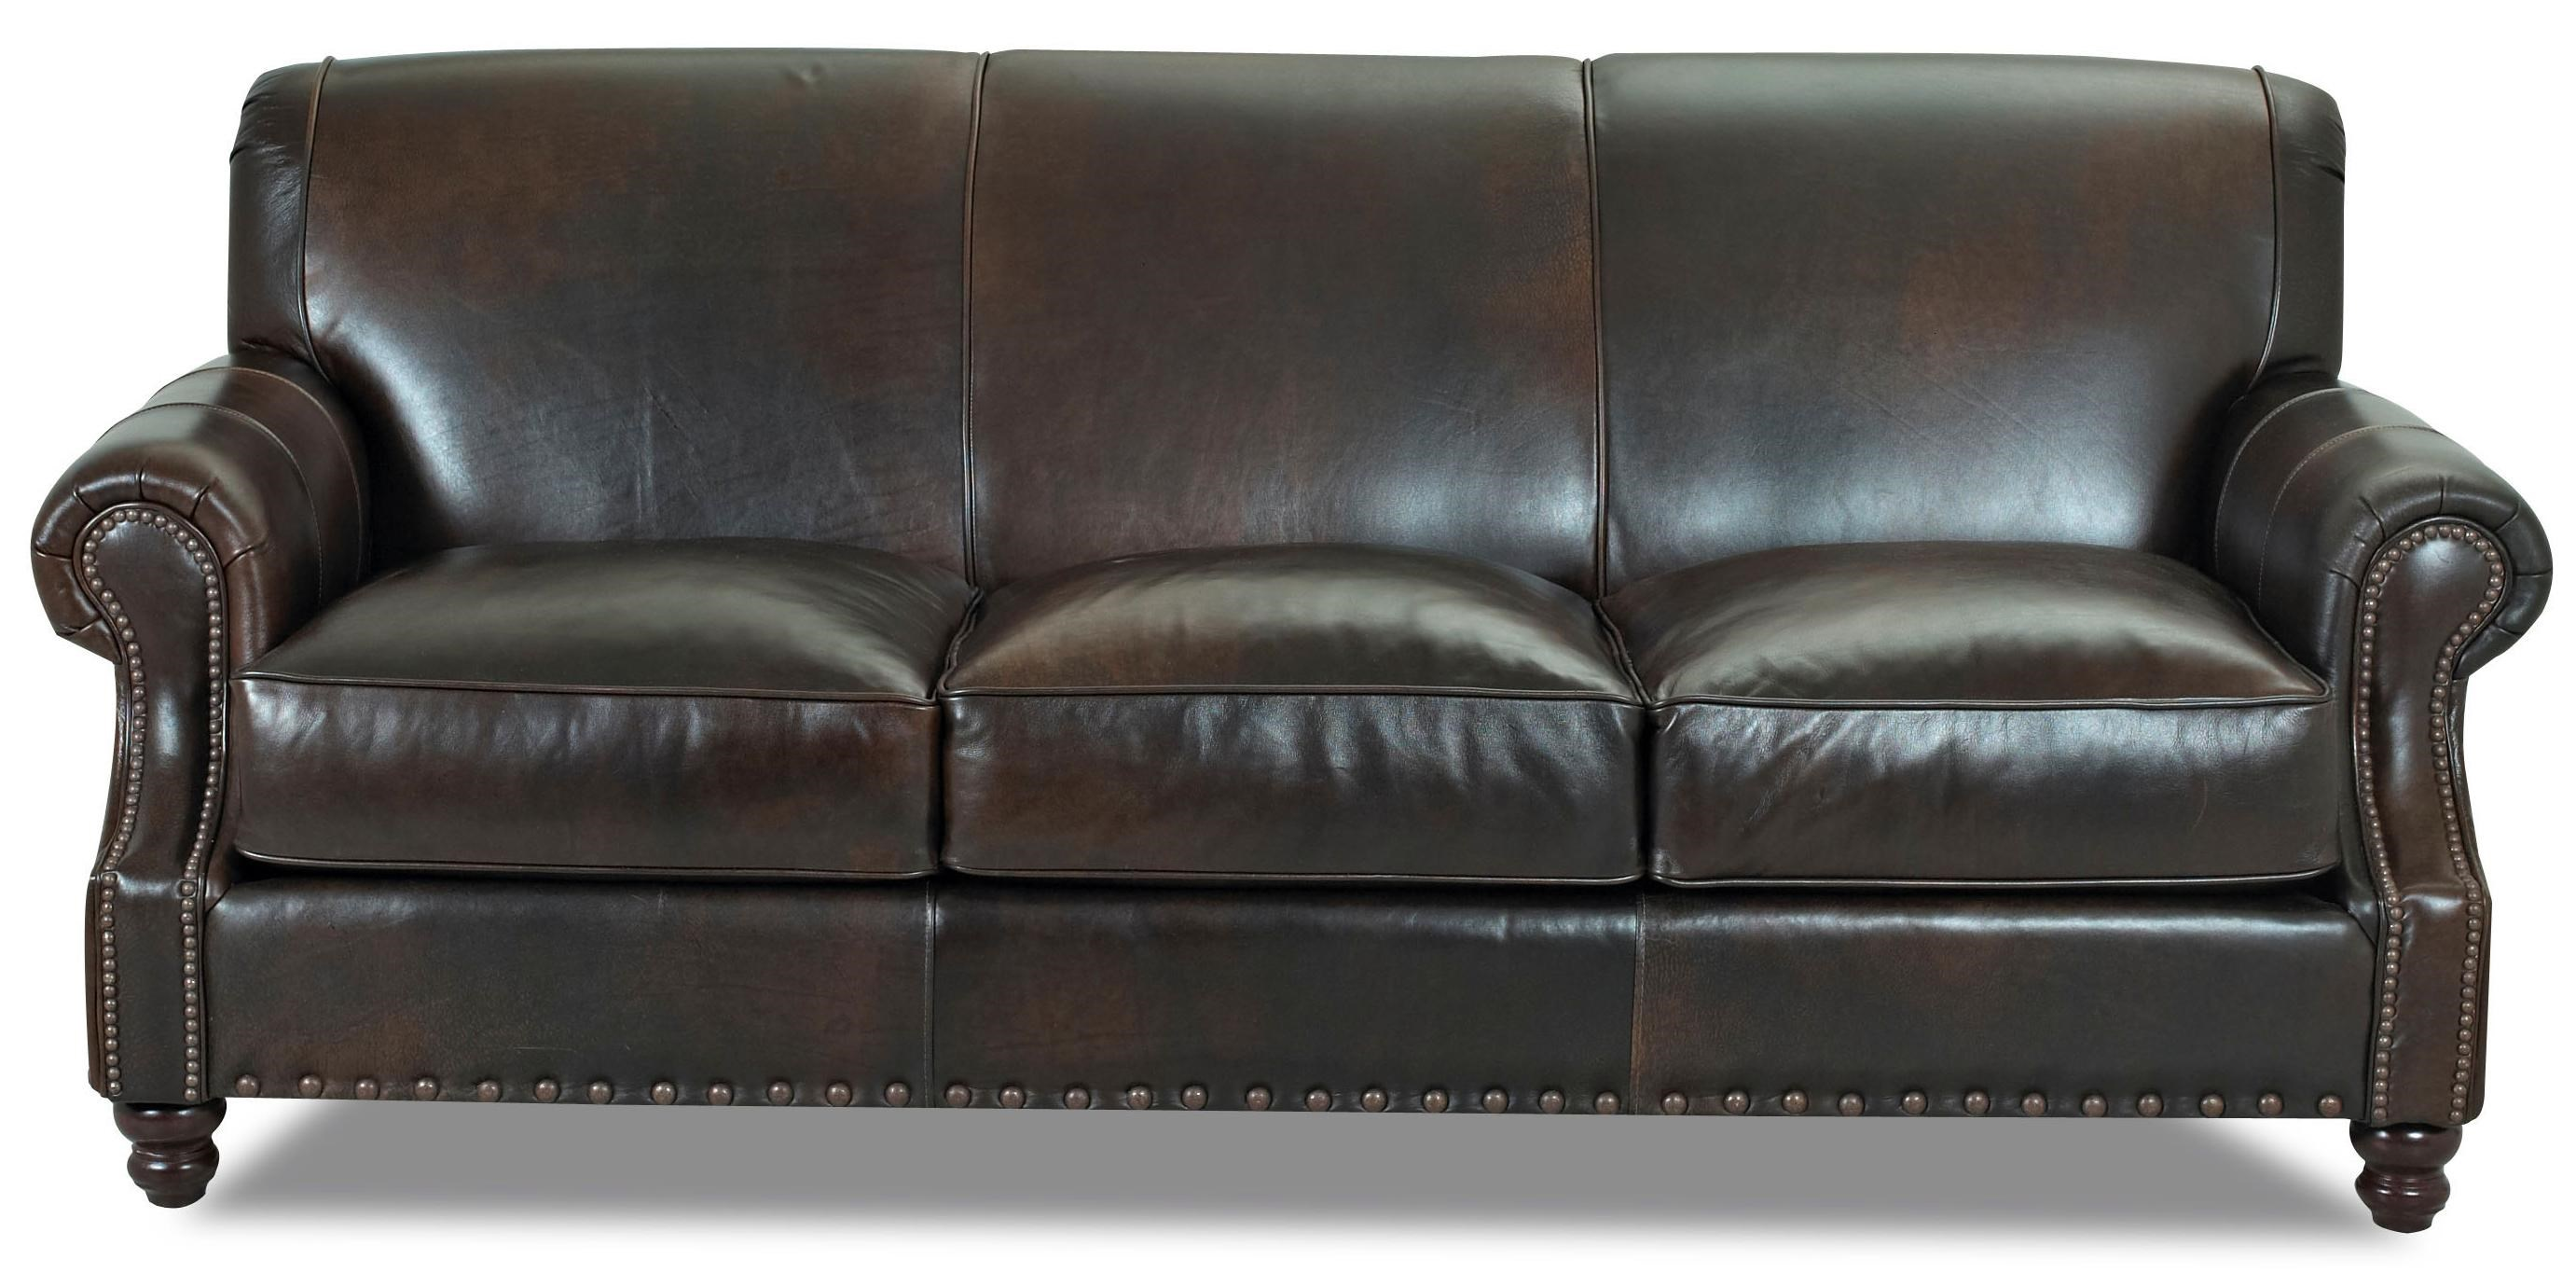 Delightful Klaussner Fremont Traditional Leather Stationary Sofa With Nail Head Trim    Dunk U0026 Bright Furniture   Sofa